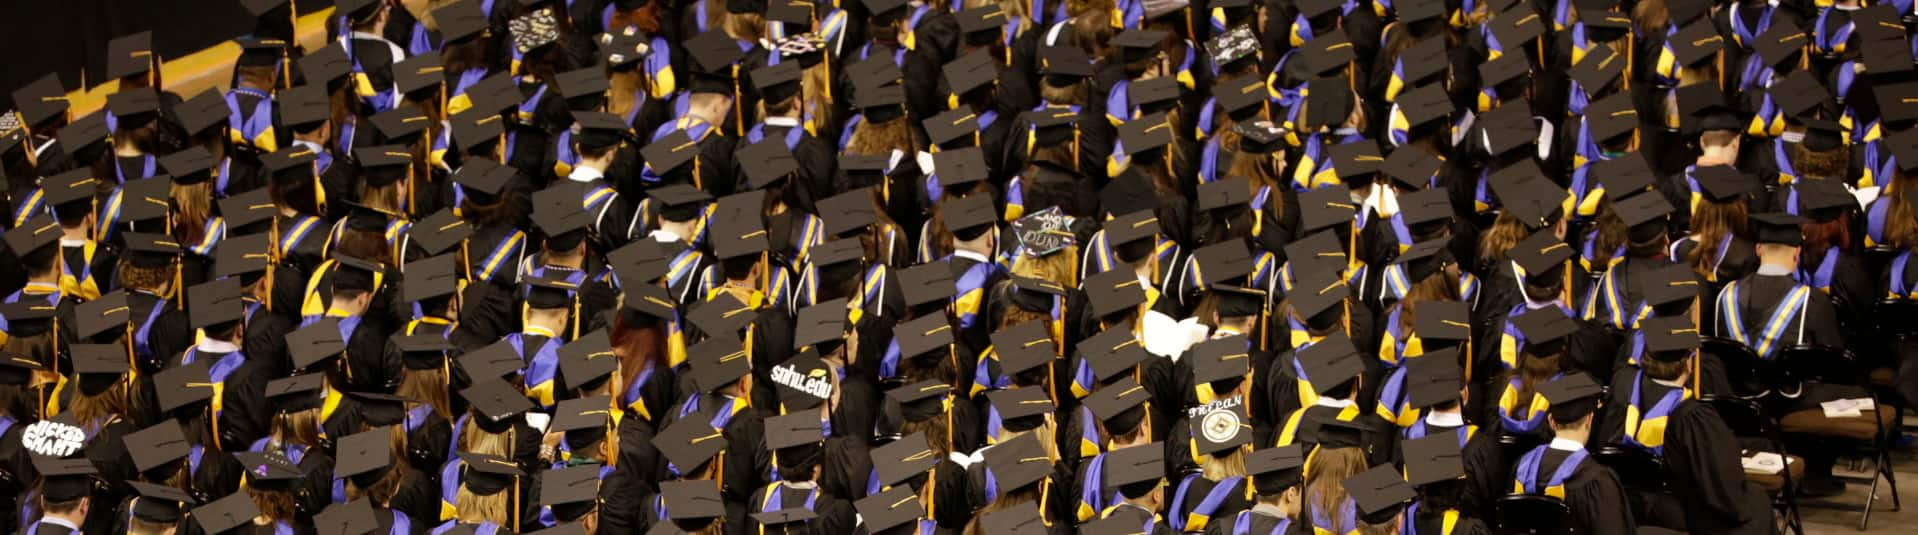 Image of students wearing caps and gowns at commencement